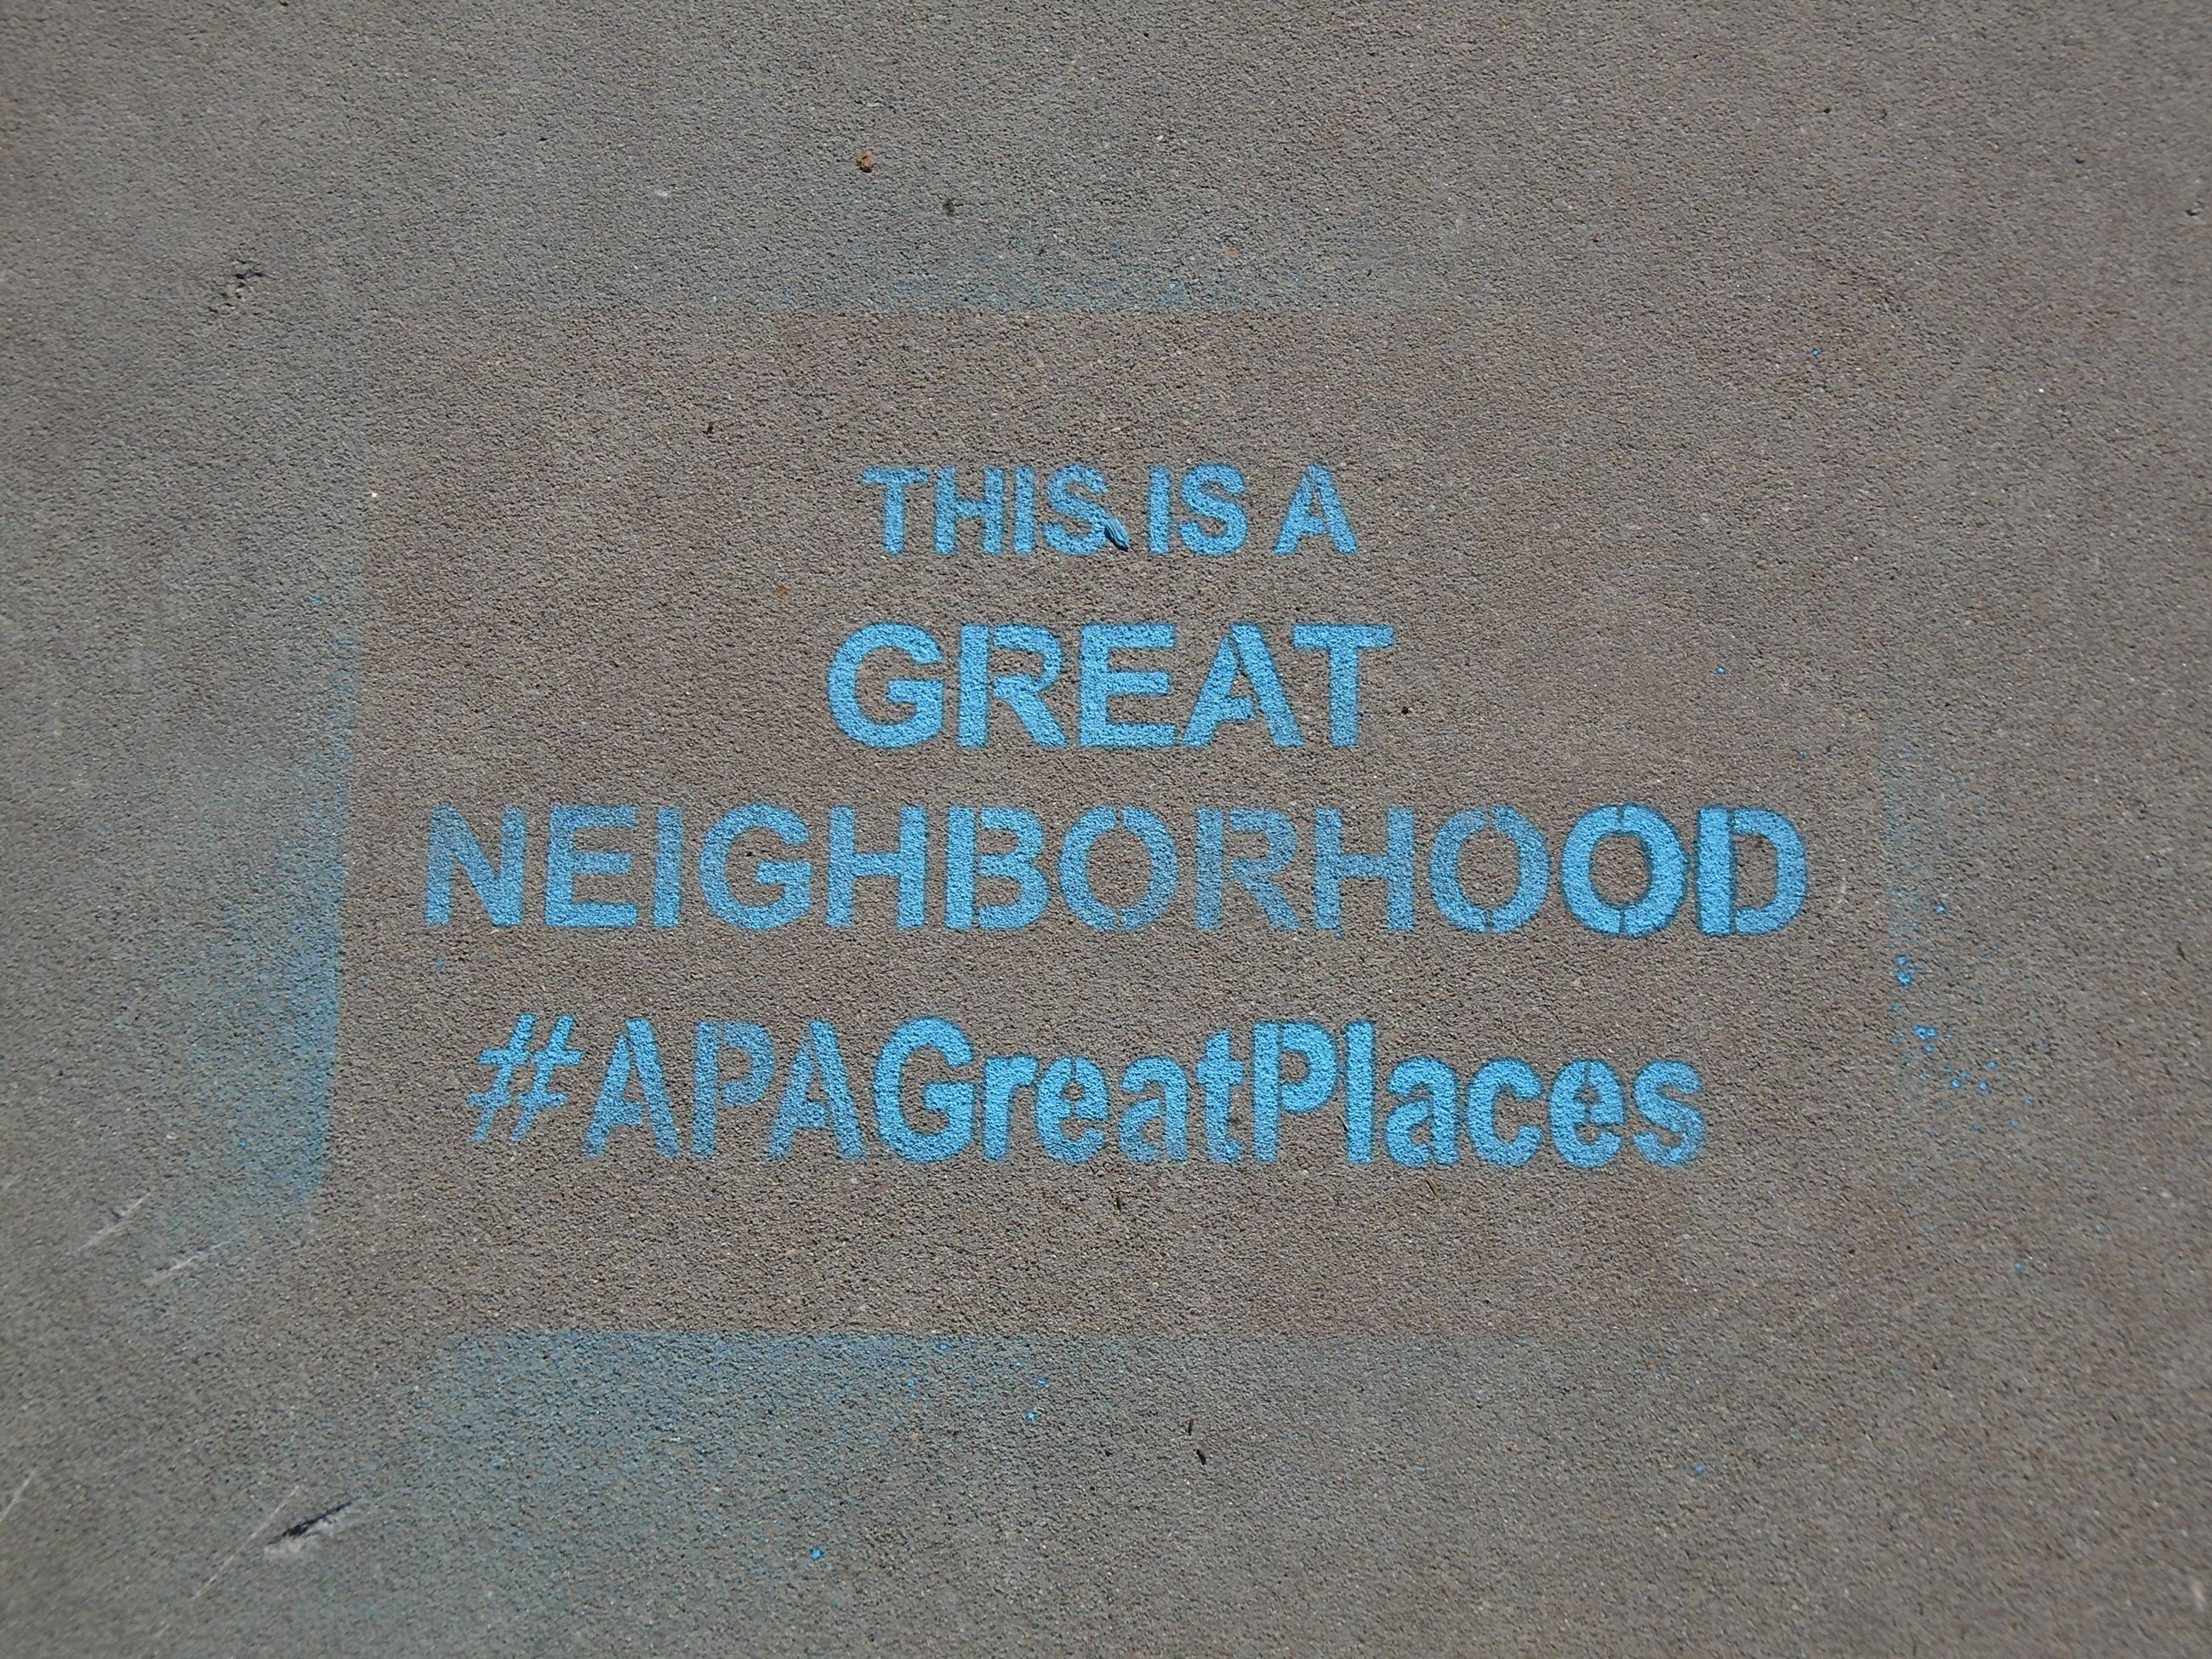 This is a Great Neighborhood #APAGreatPlaces stenciled on sidewalk